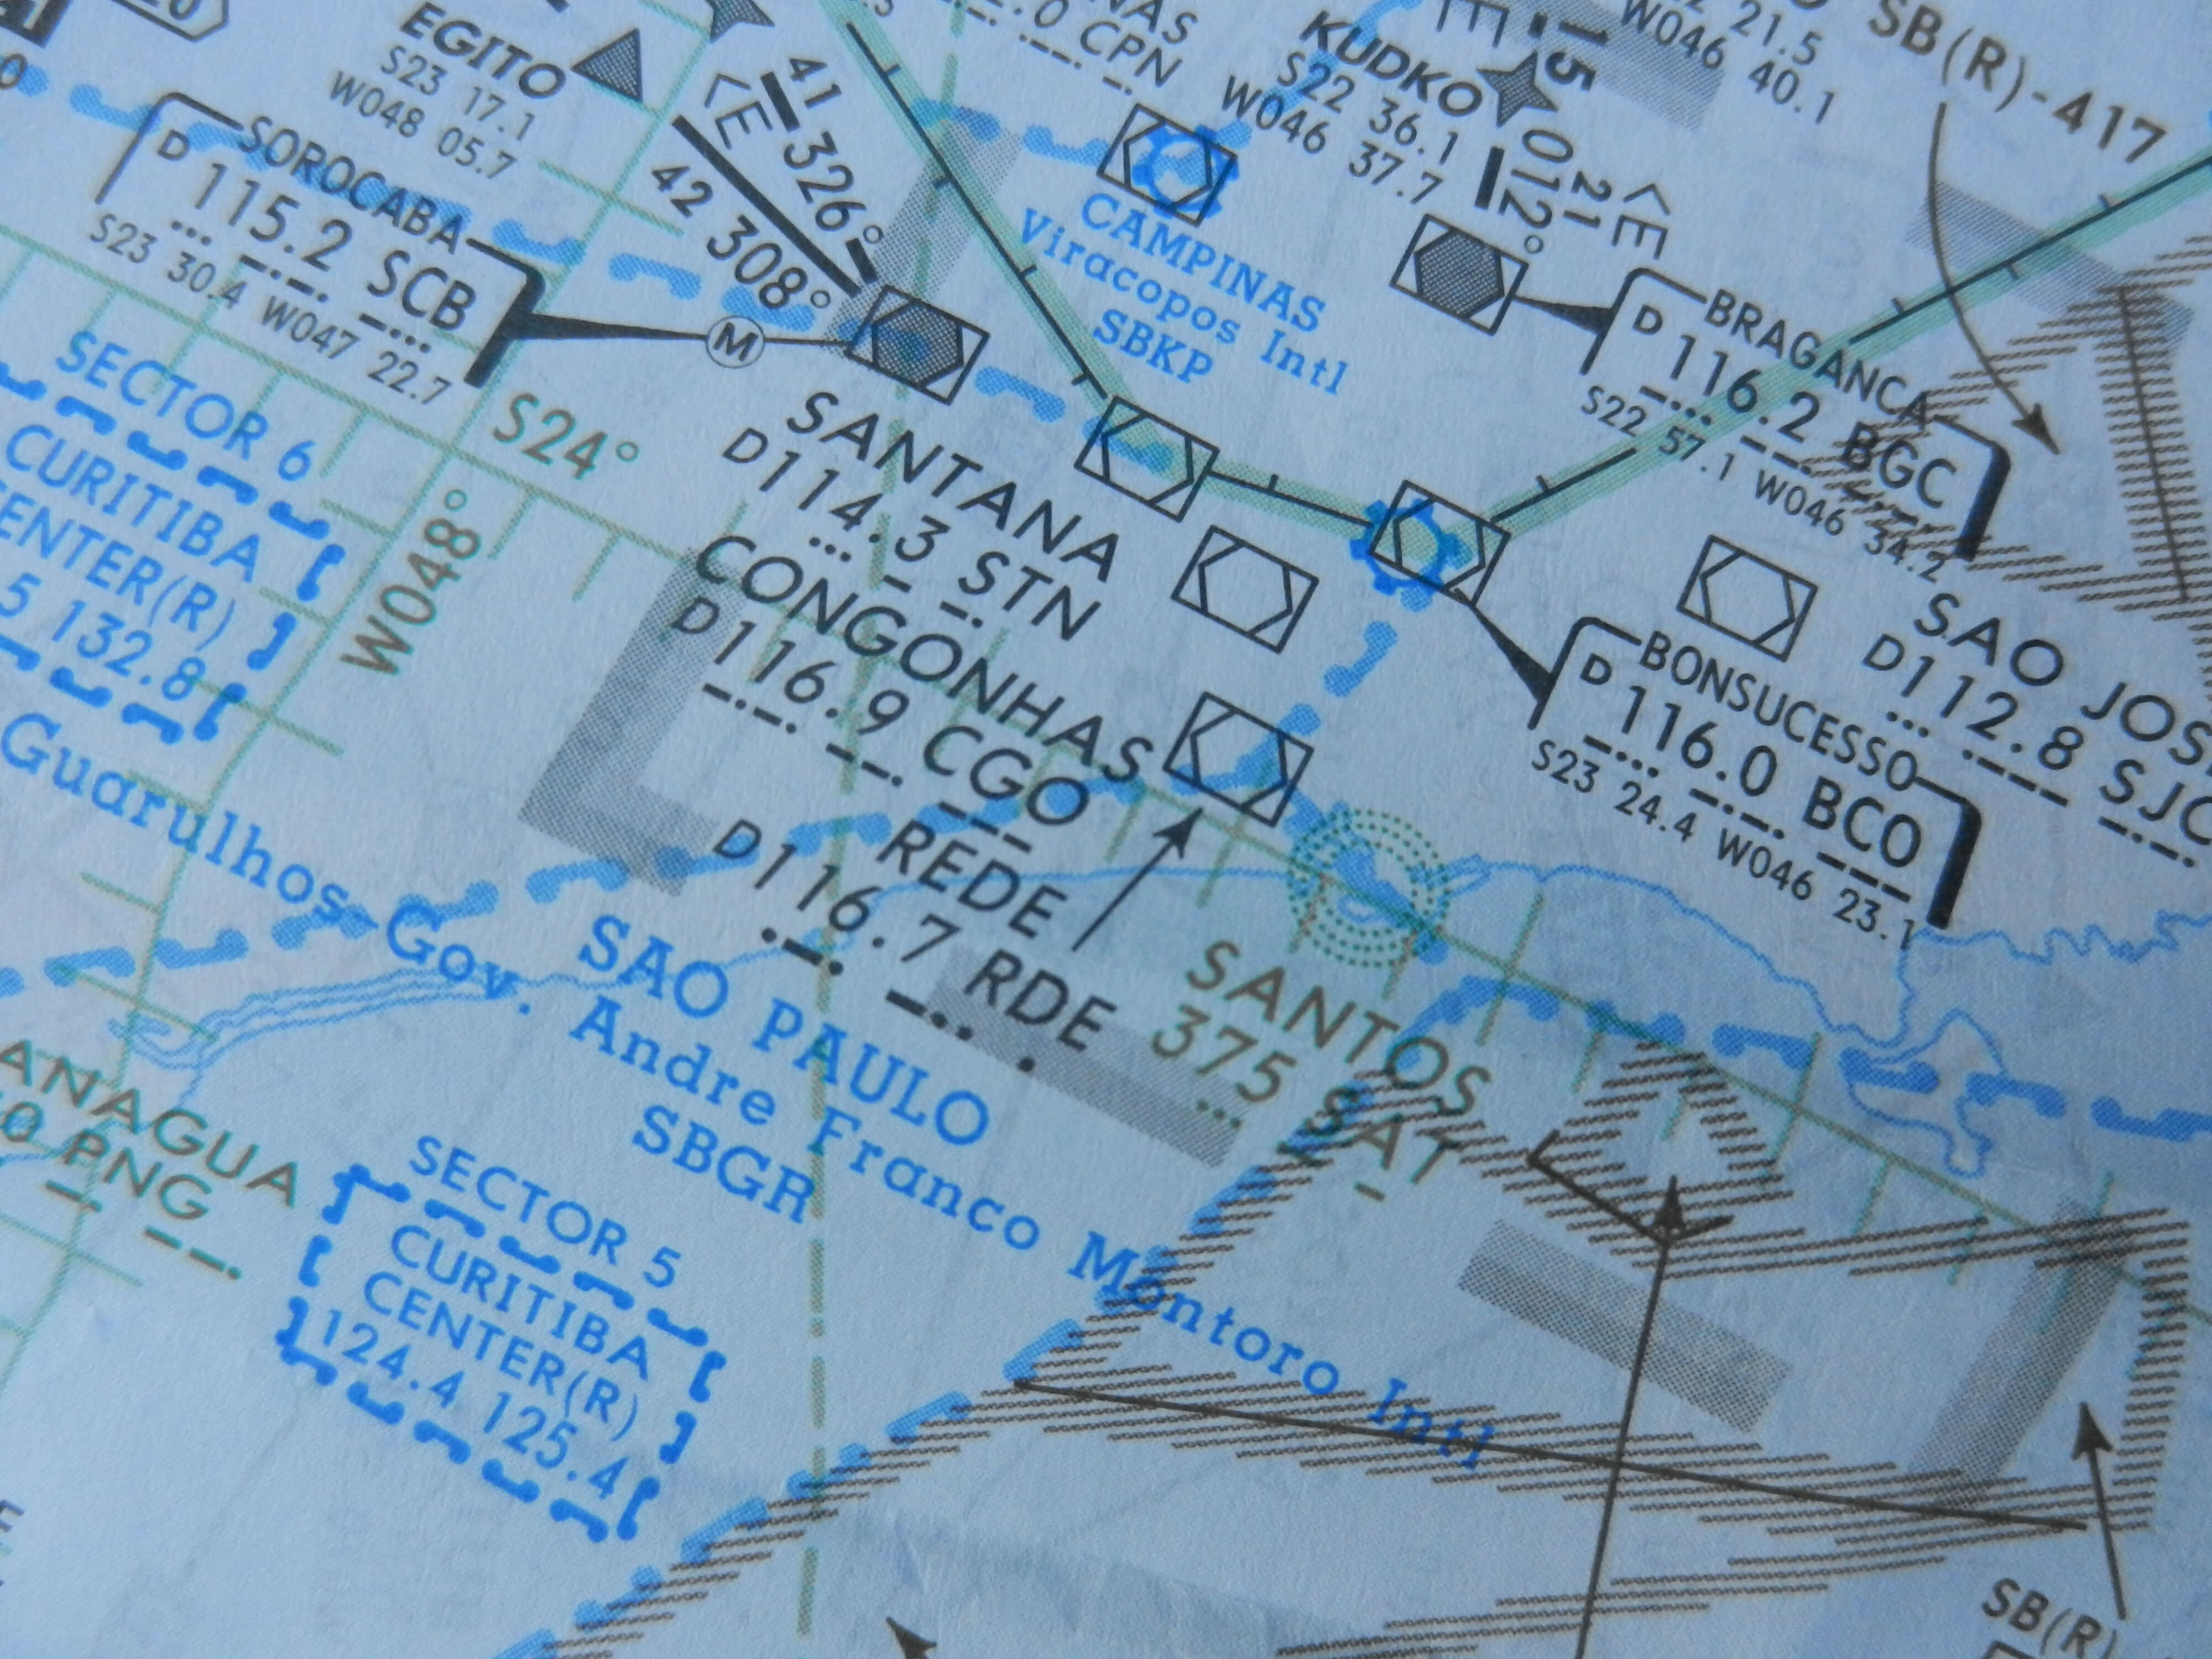 IFR Maps